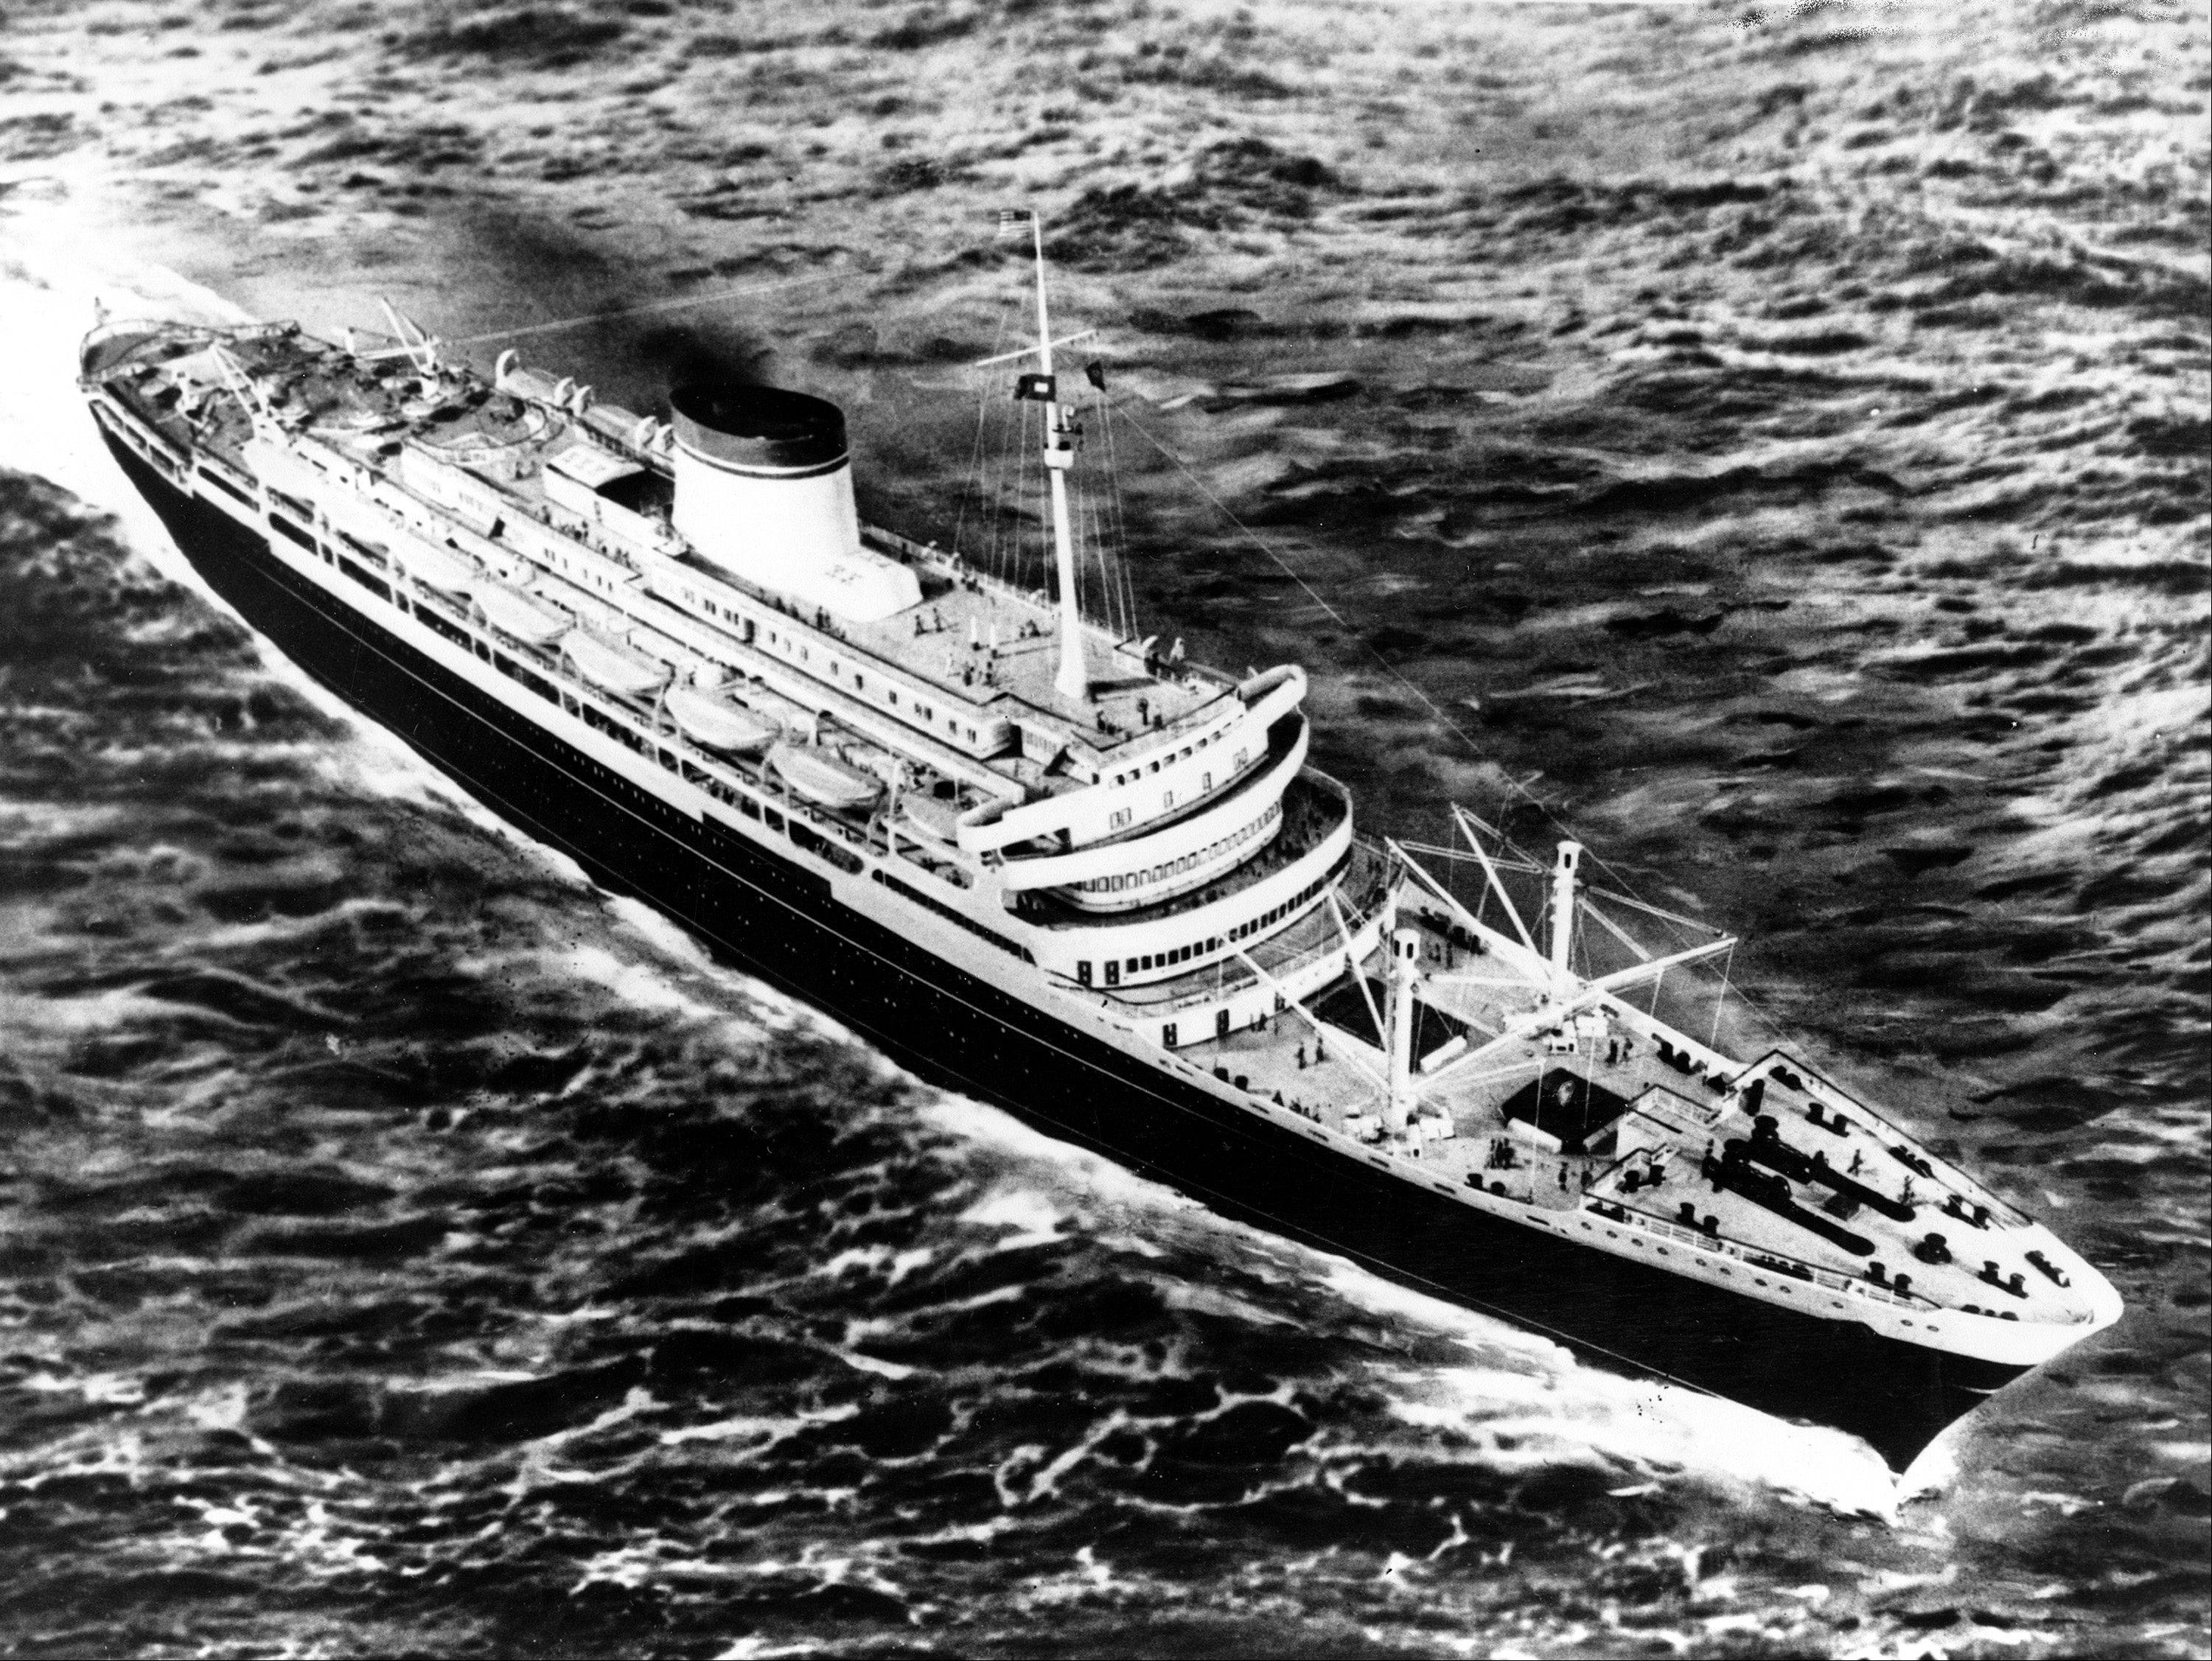 Images Sinking Of The Andrea Doria